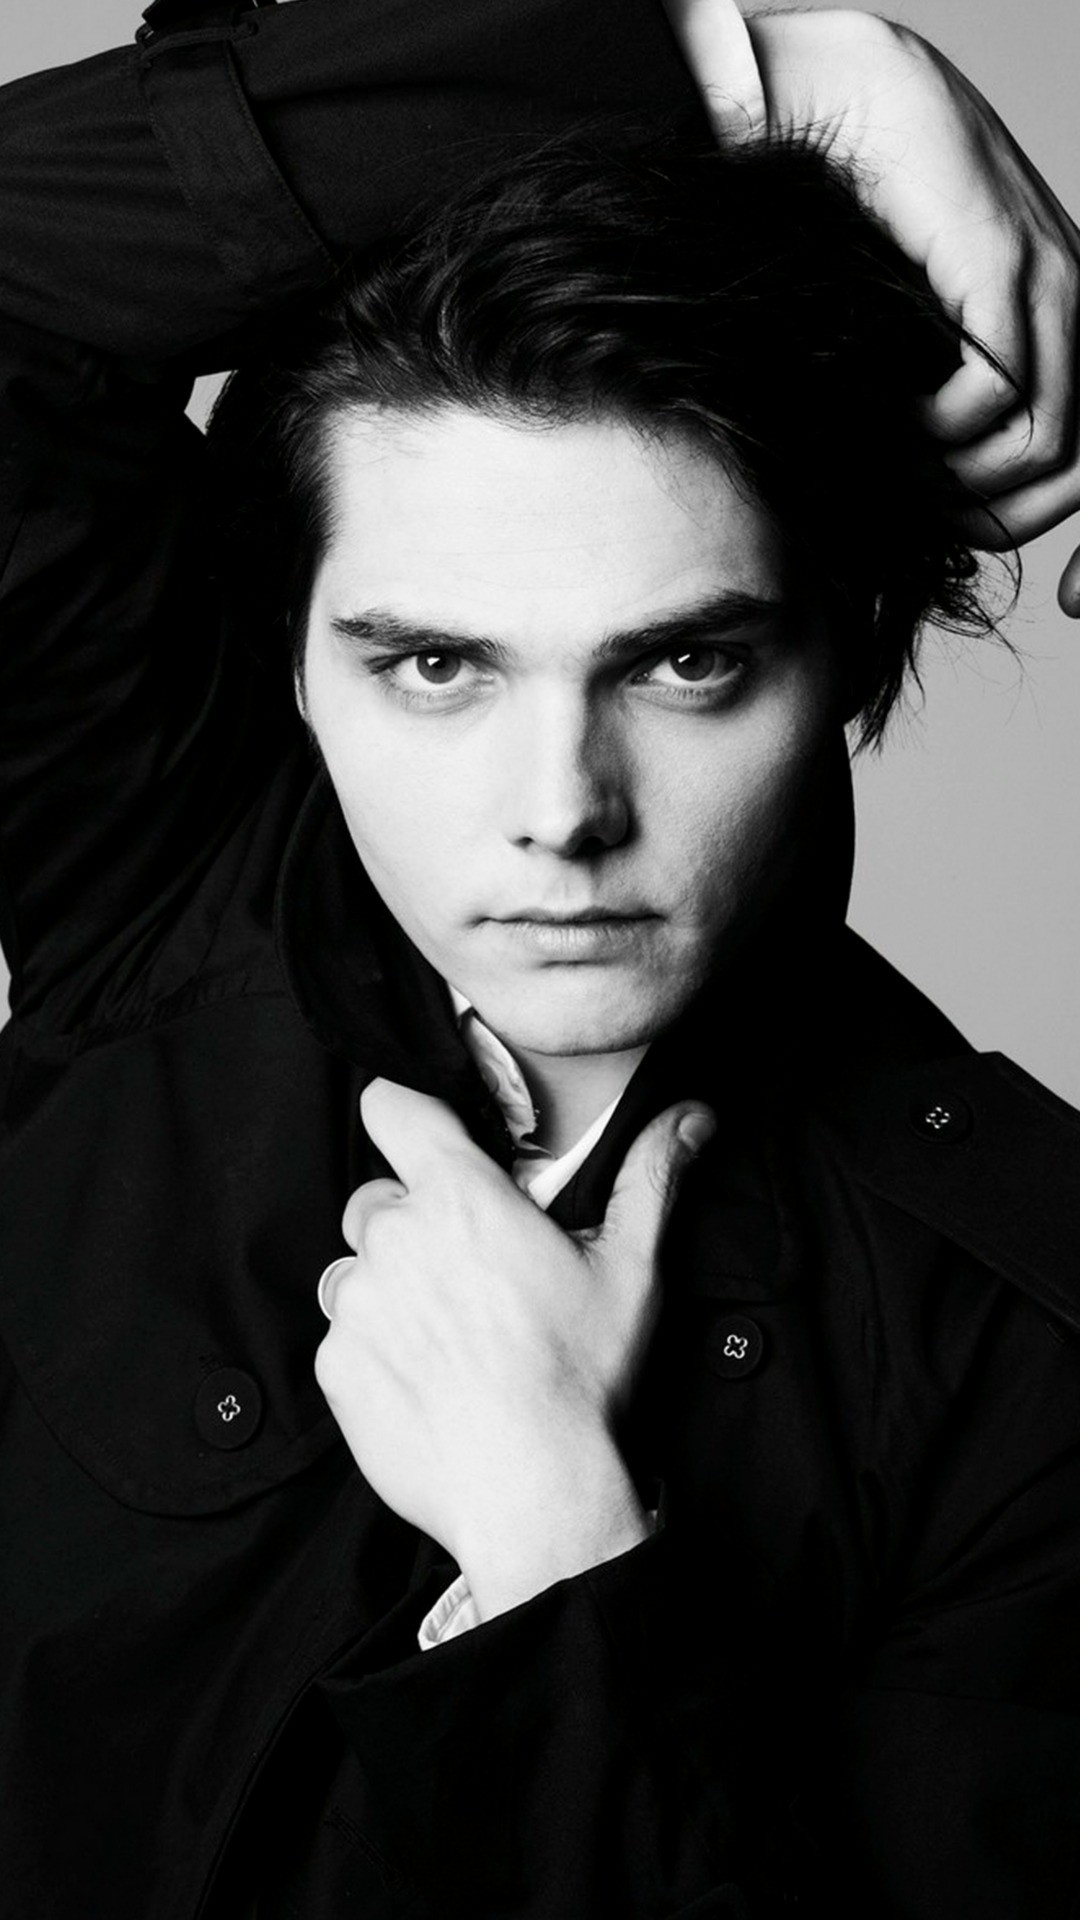 How To Make Live Wallpaper Iphone X Gerard Way Wallpapers 75 Images